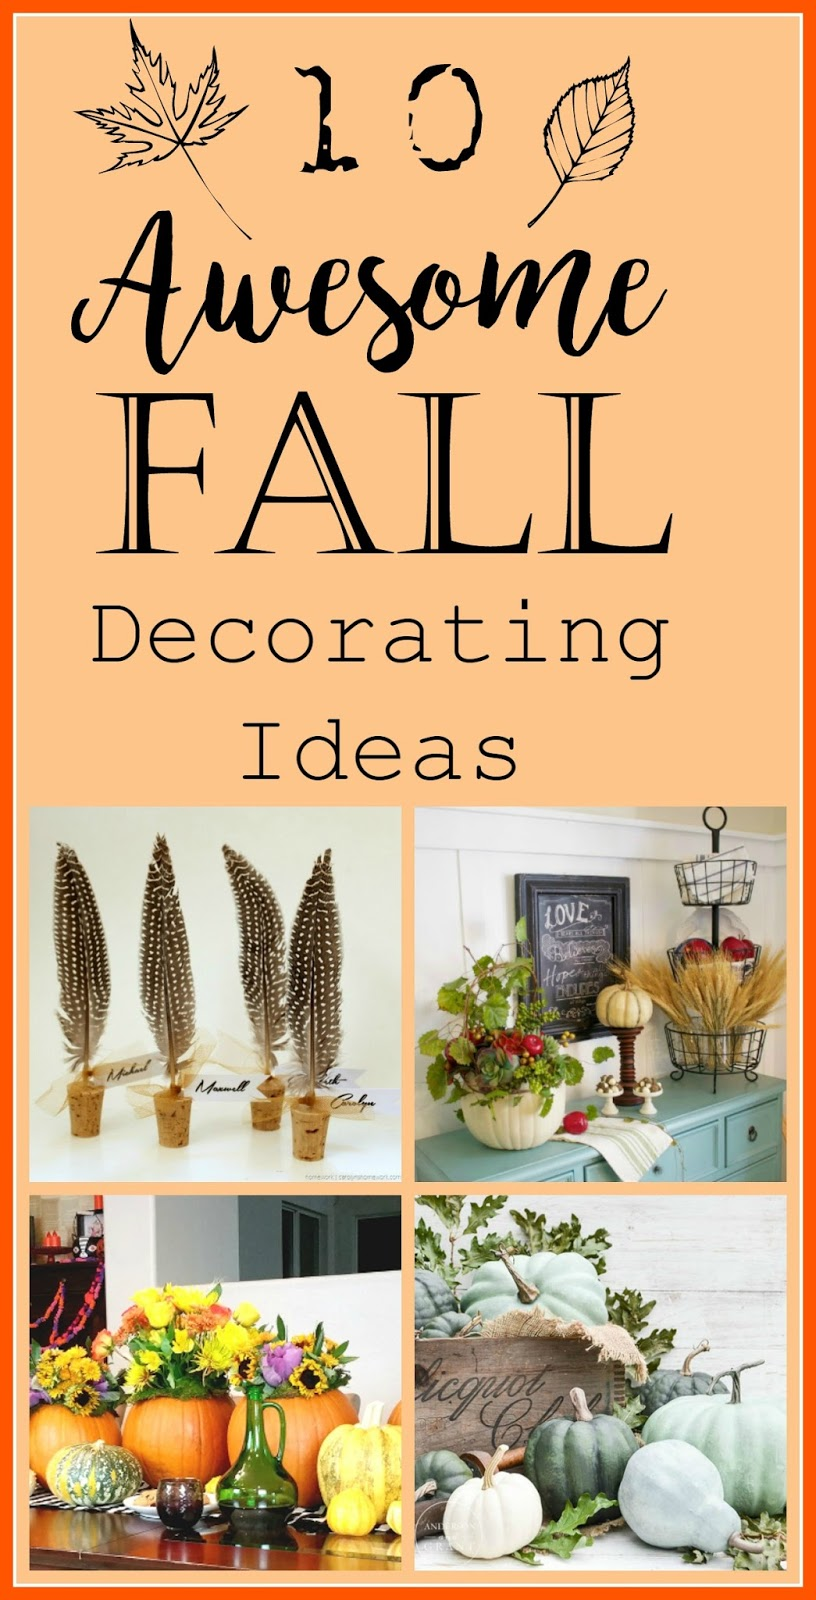 Our hopeful home 10 awesome fall decorating ideas for Decorative ideas